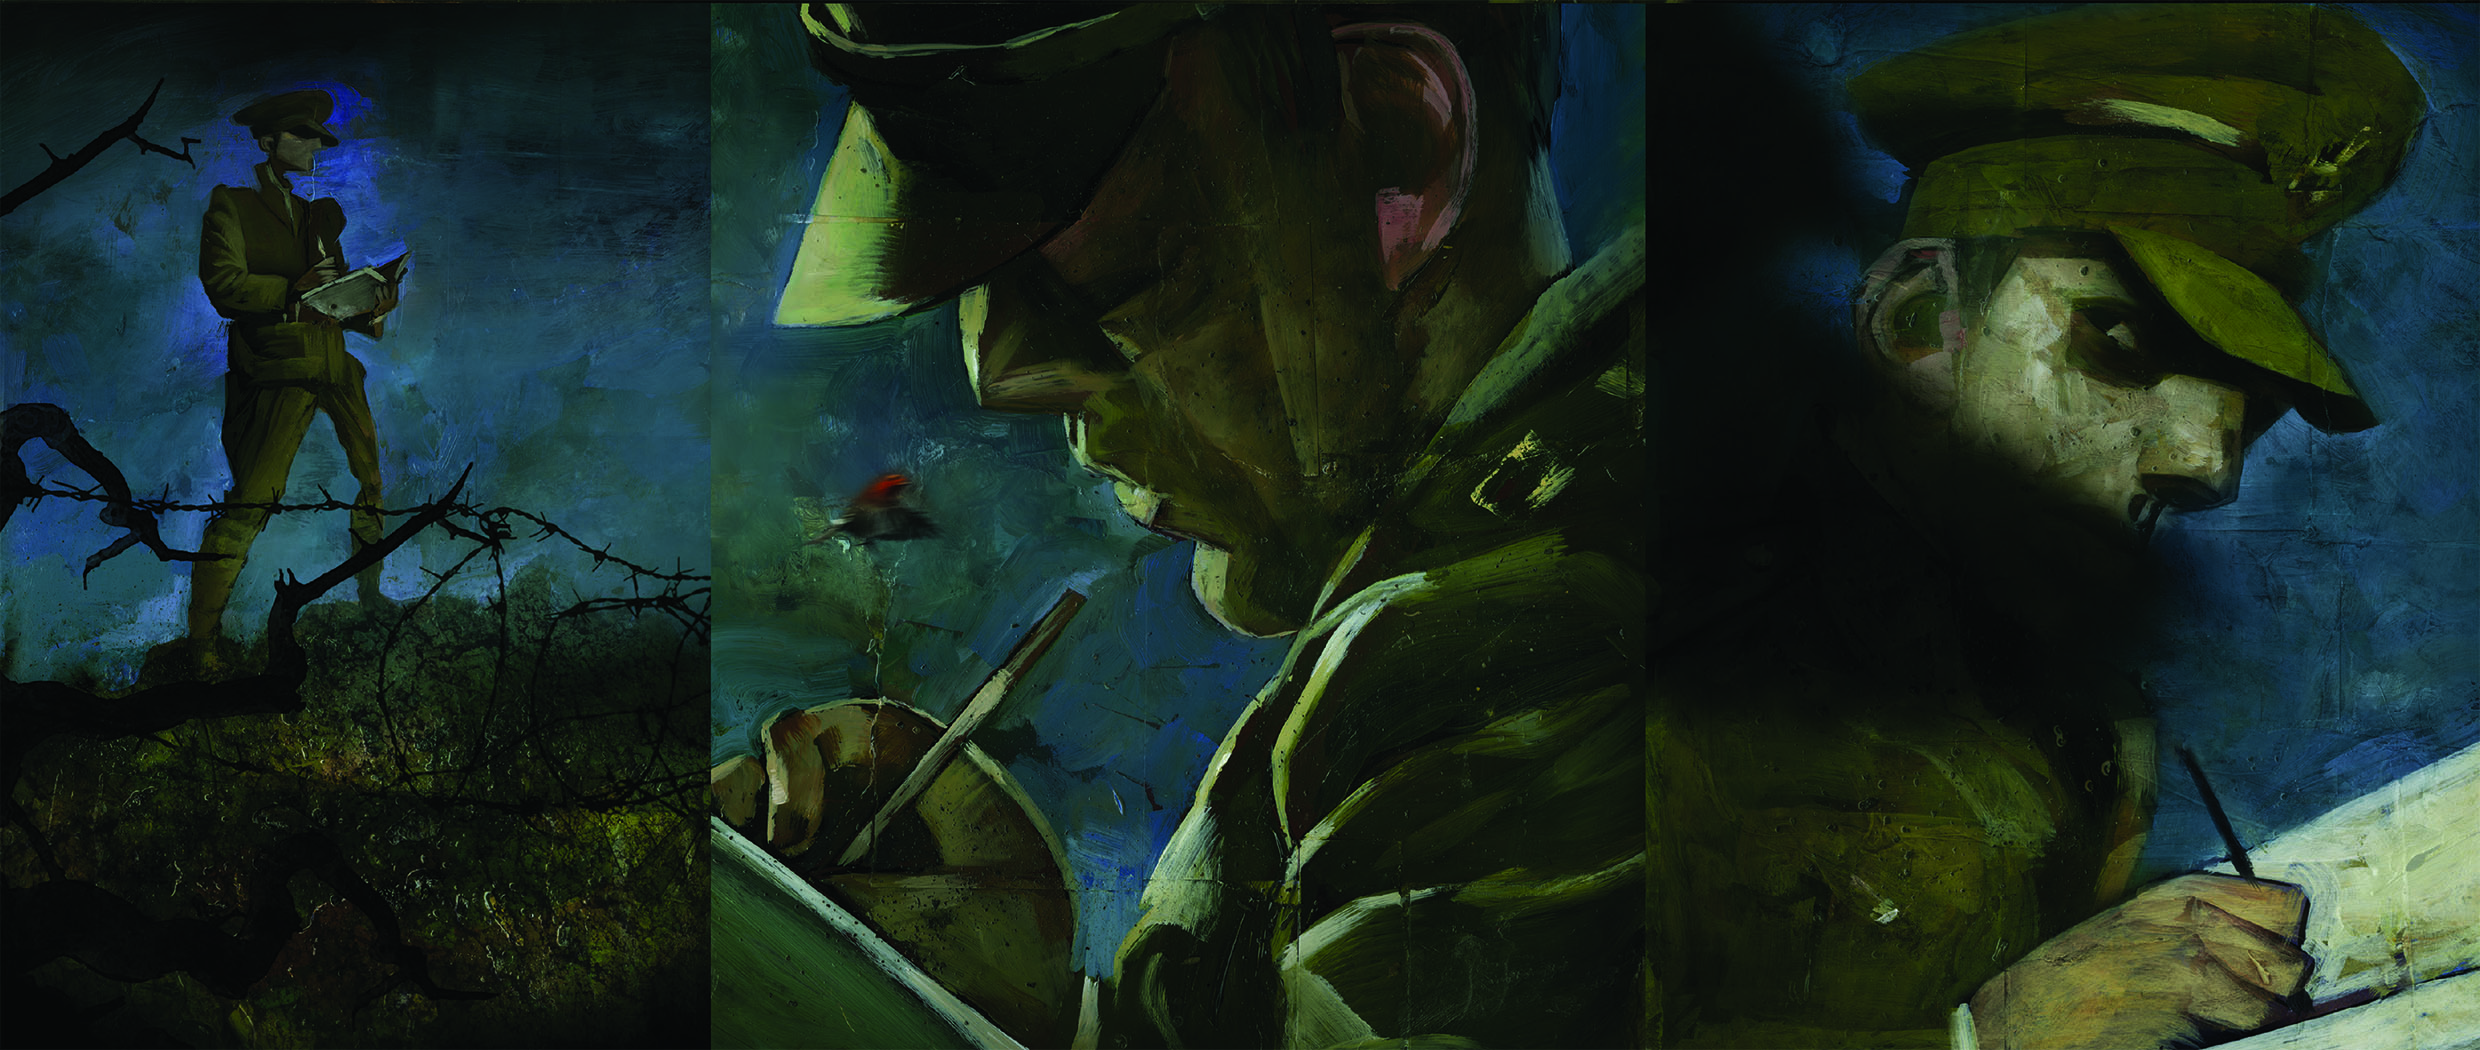 Black Dog: The Dreams of Paul Nash (Dave McKean; Dark Horse Comics)